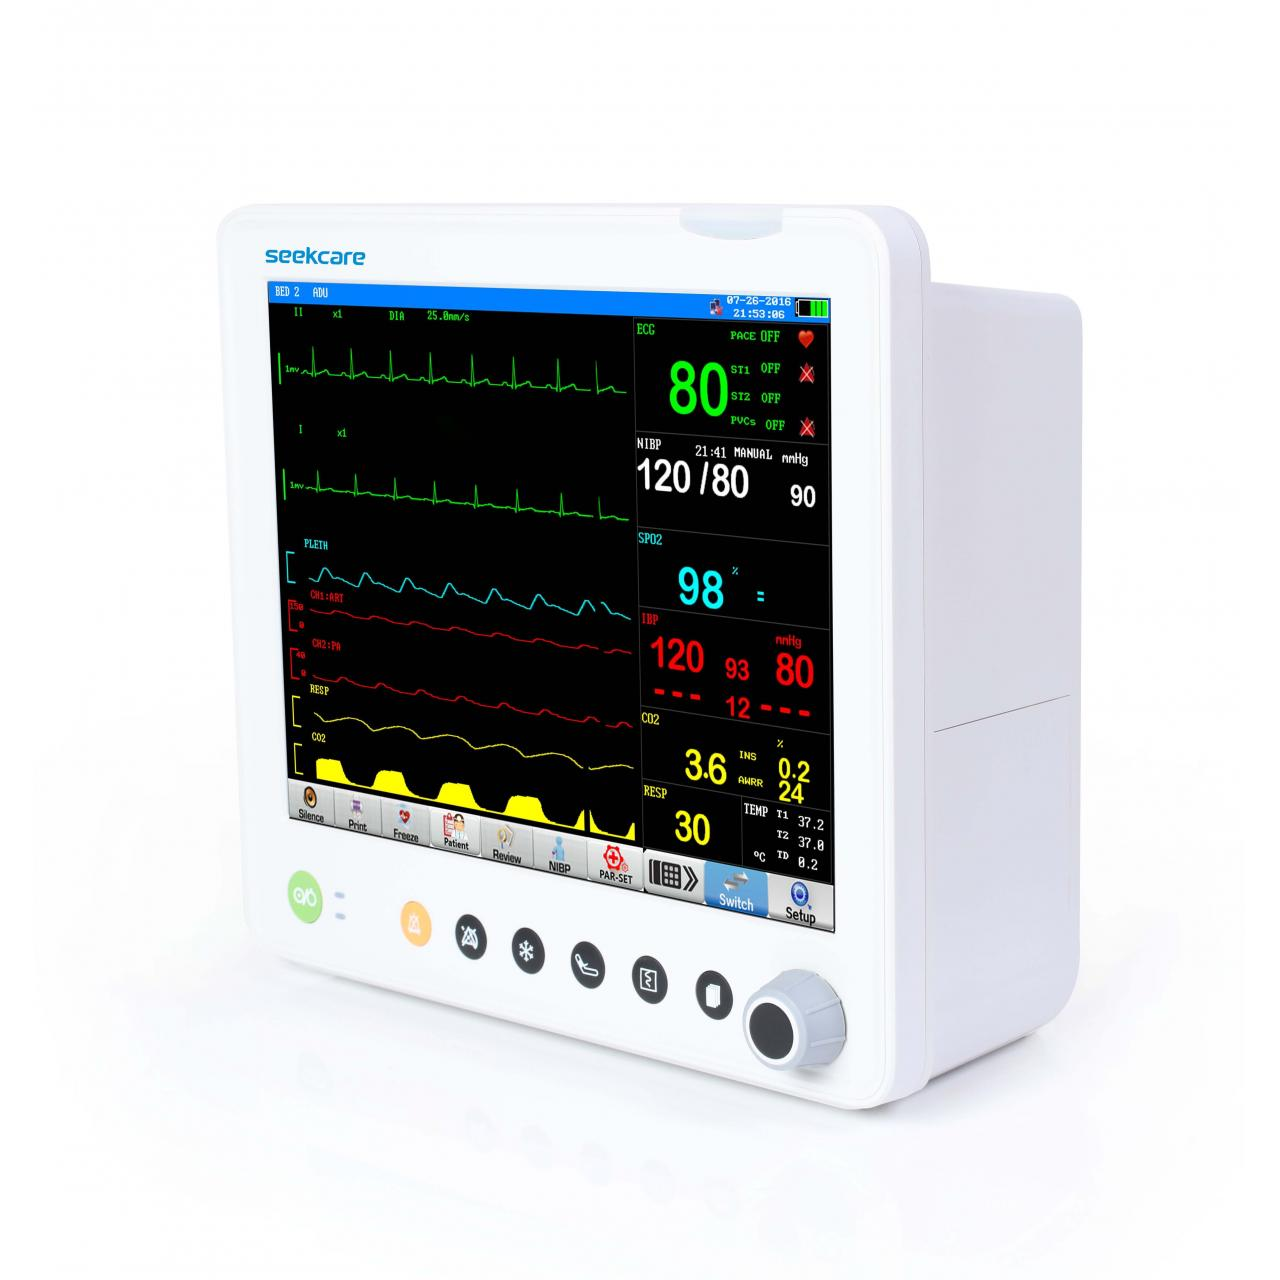 P1210 Patient Monitor